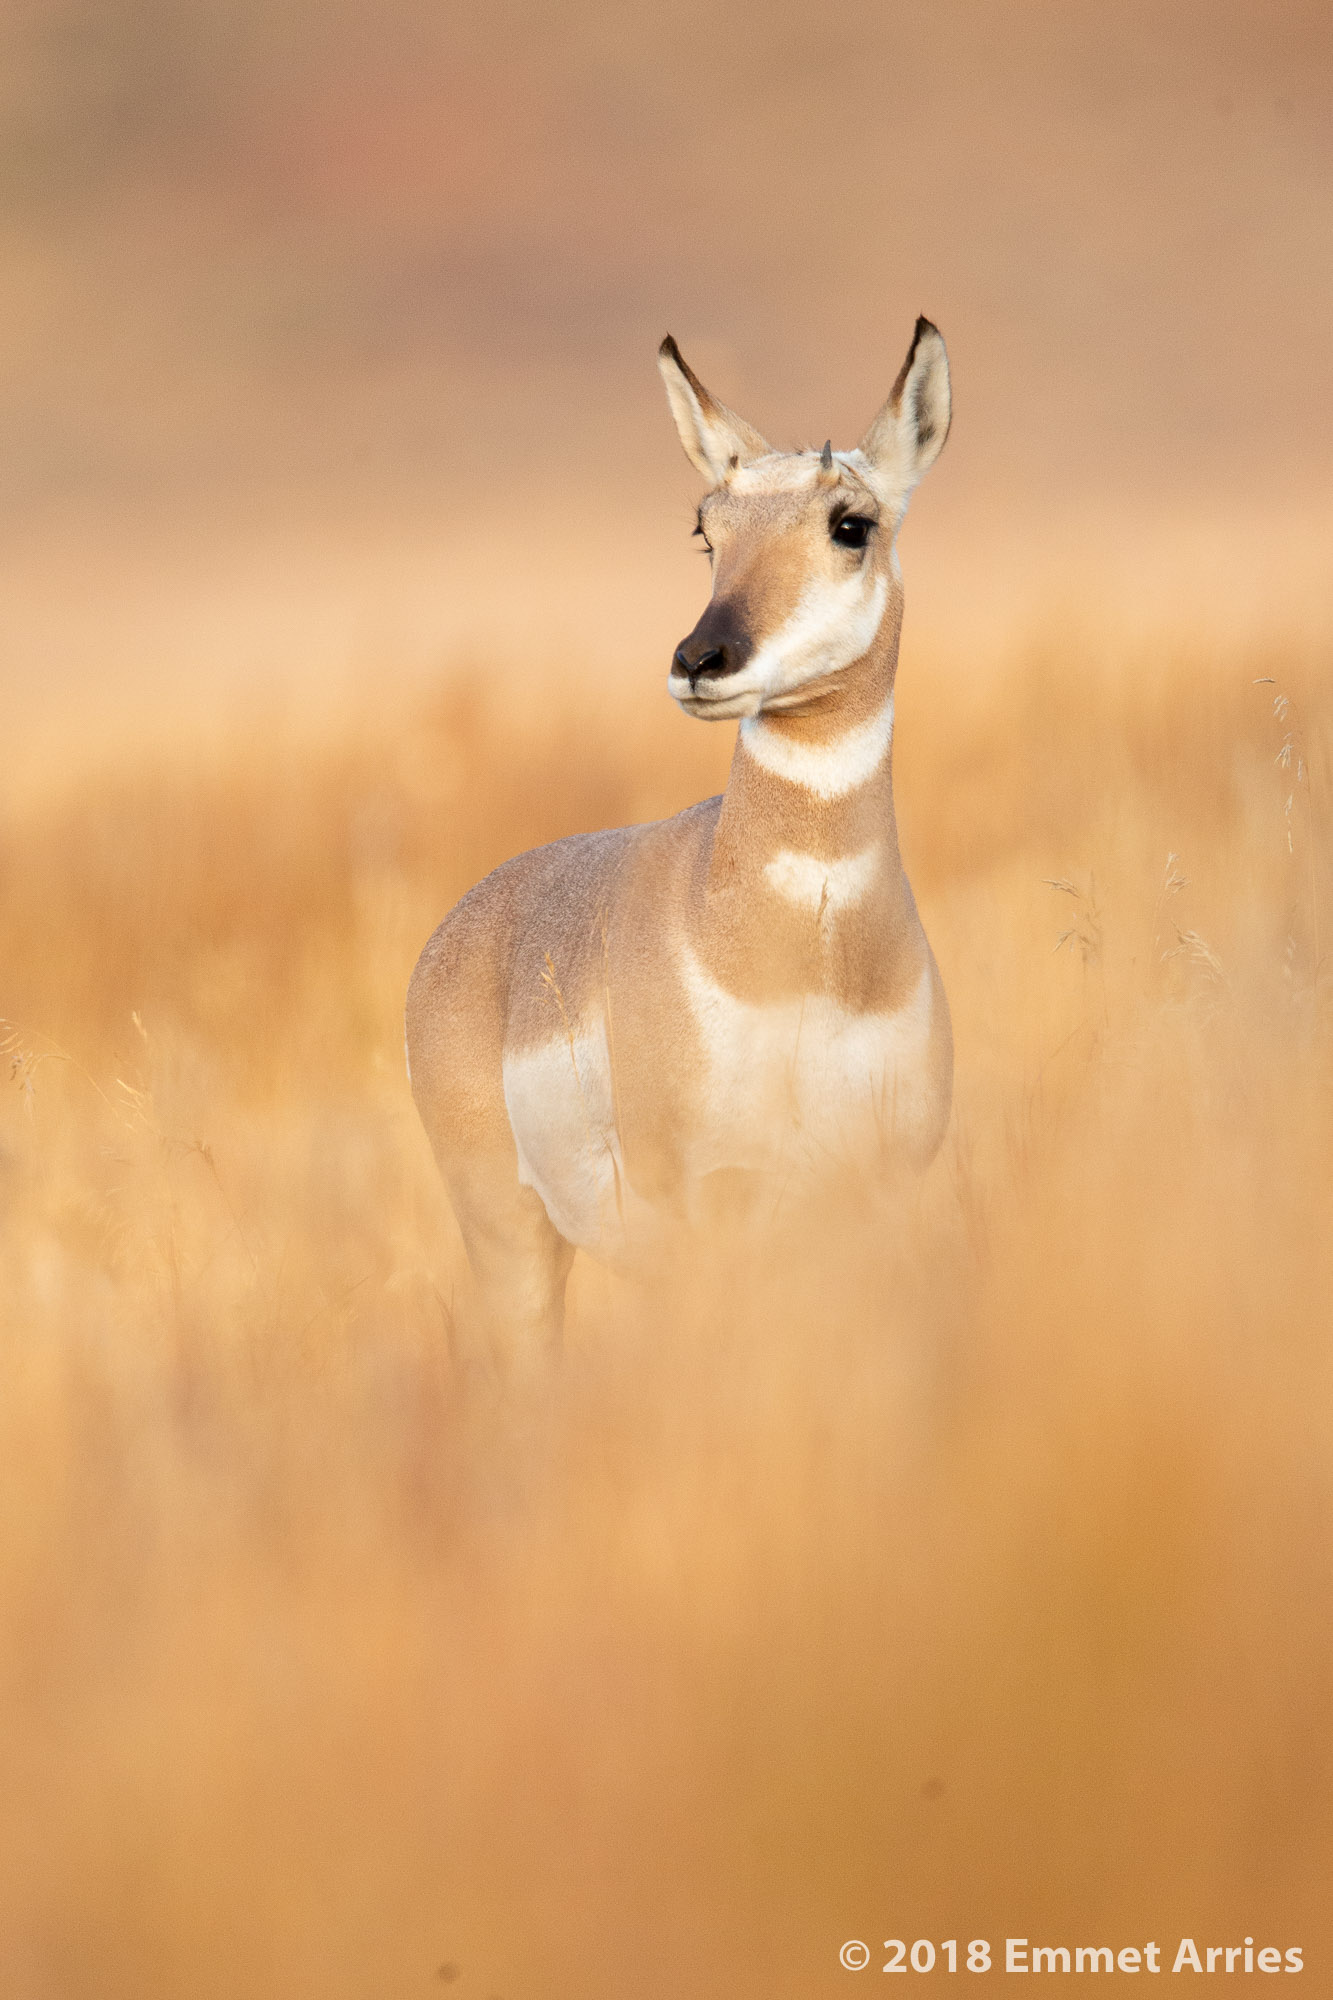 During an early morning excursion in Grand Teton National Park, I found this pronghorn standing alert but relaxed in the soft morning light. Pronghorn are the fastest land animal in North America; they can reach speeds of more than 50 miles per hour!